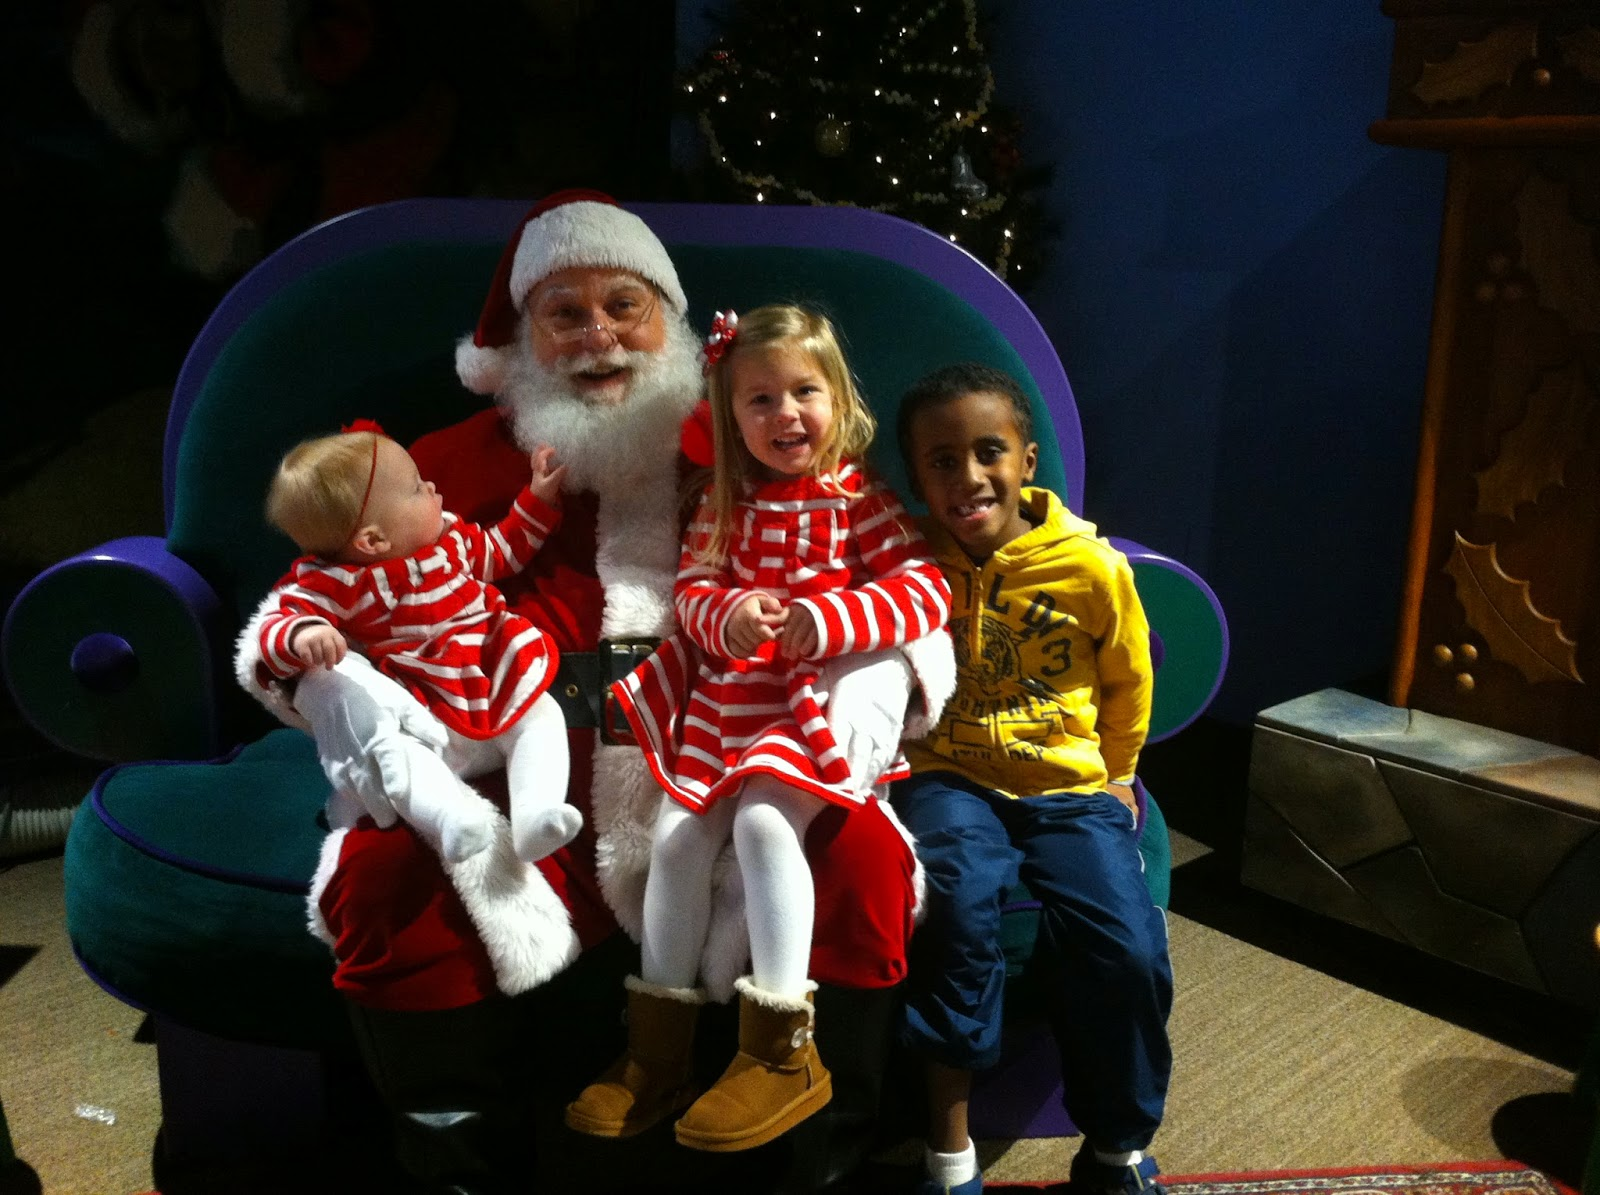 santa claus single parent personals Detailed profile of single adult in the news - 23 mar: barry bonds mitt romney rupert murdoch santa claus adult personals for singles and couples.